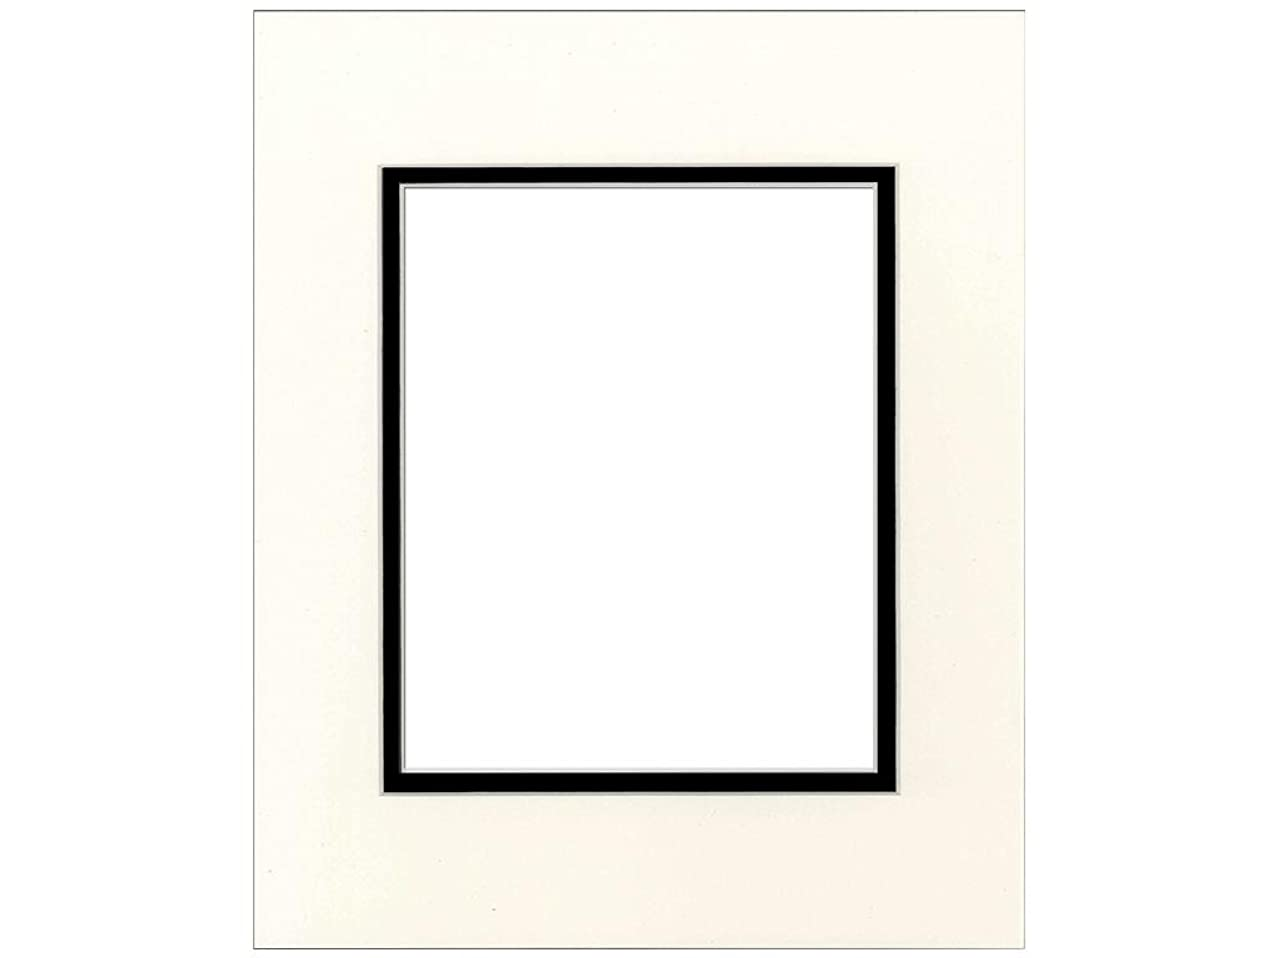 PA Framing, Double Mat 14 x 18 inches - Cream Core Antique White and Black Inner